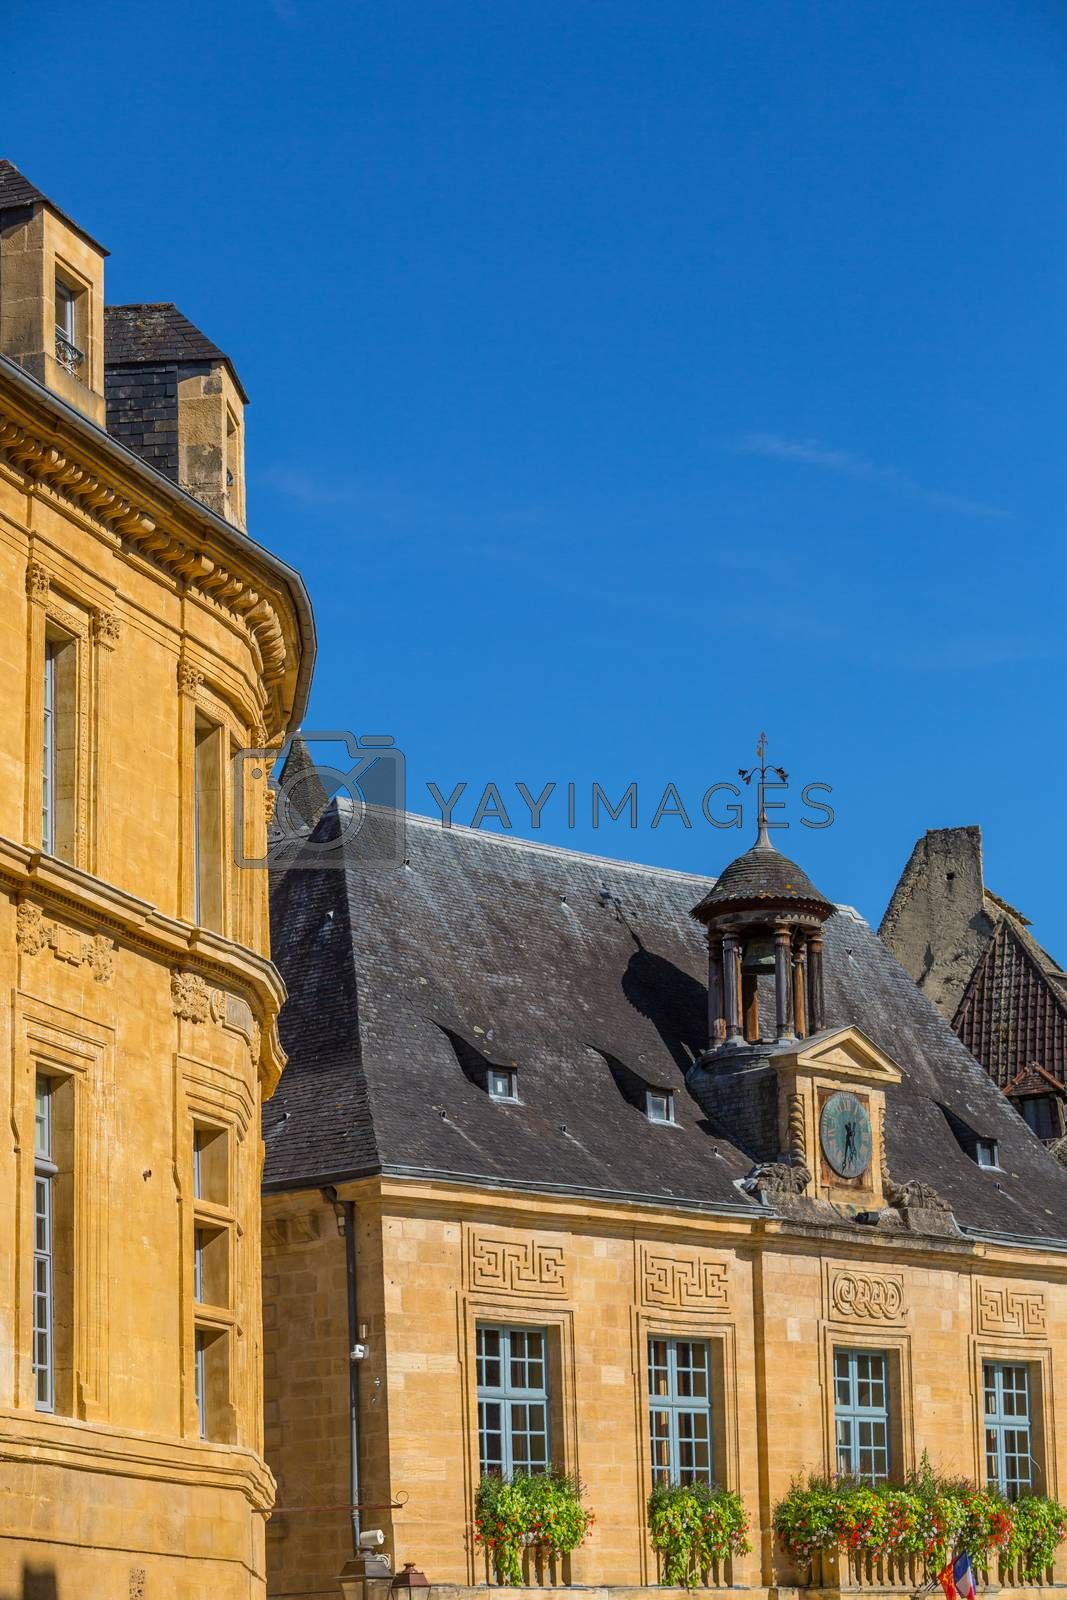 Sarlat-la-Caneda, France: Houses of the centre of the old medieval town of Sarlat-la-Caneda, Dordogne, France.